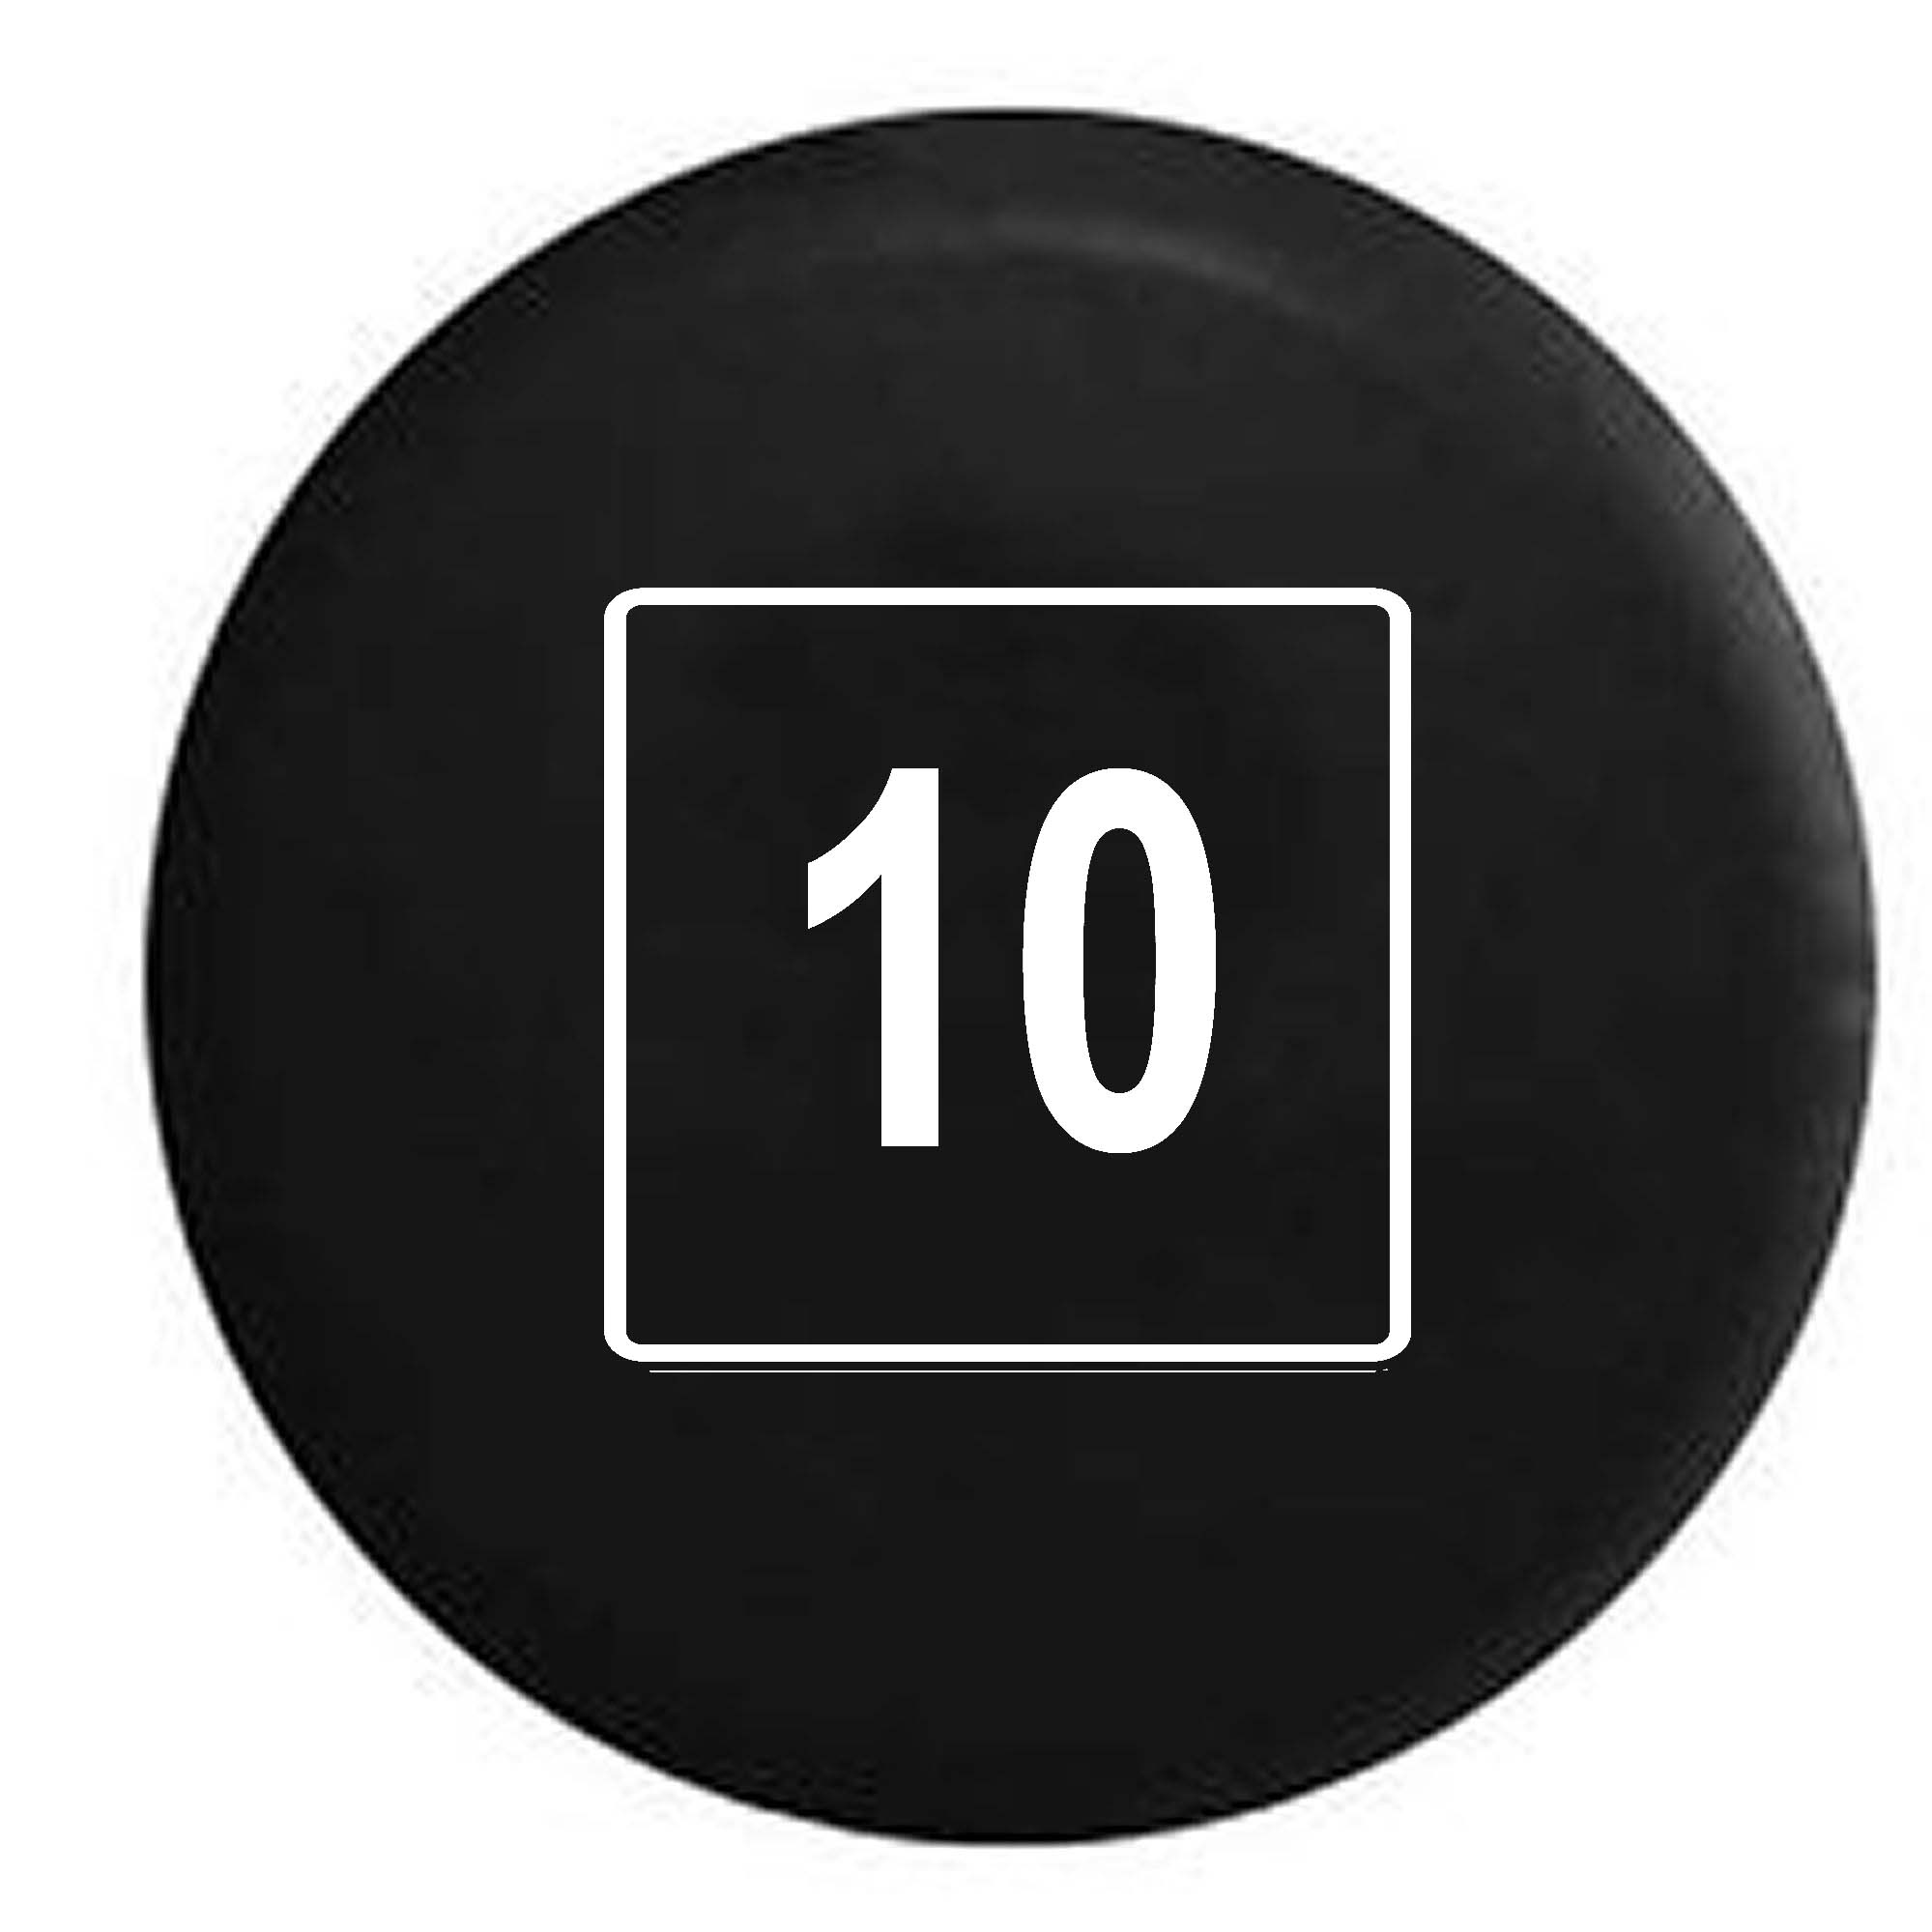 Rhode Island State Route Highway 10 Scenic Road Sign Spare Tire Cover Vinyl Black 31 in